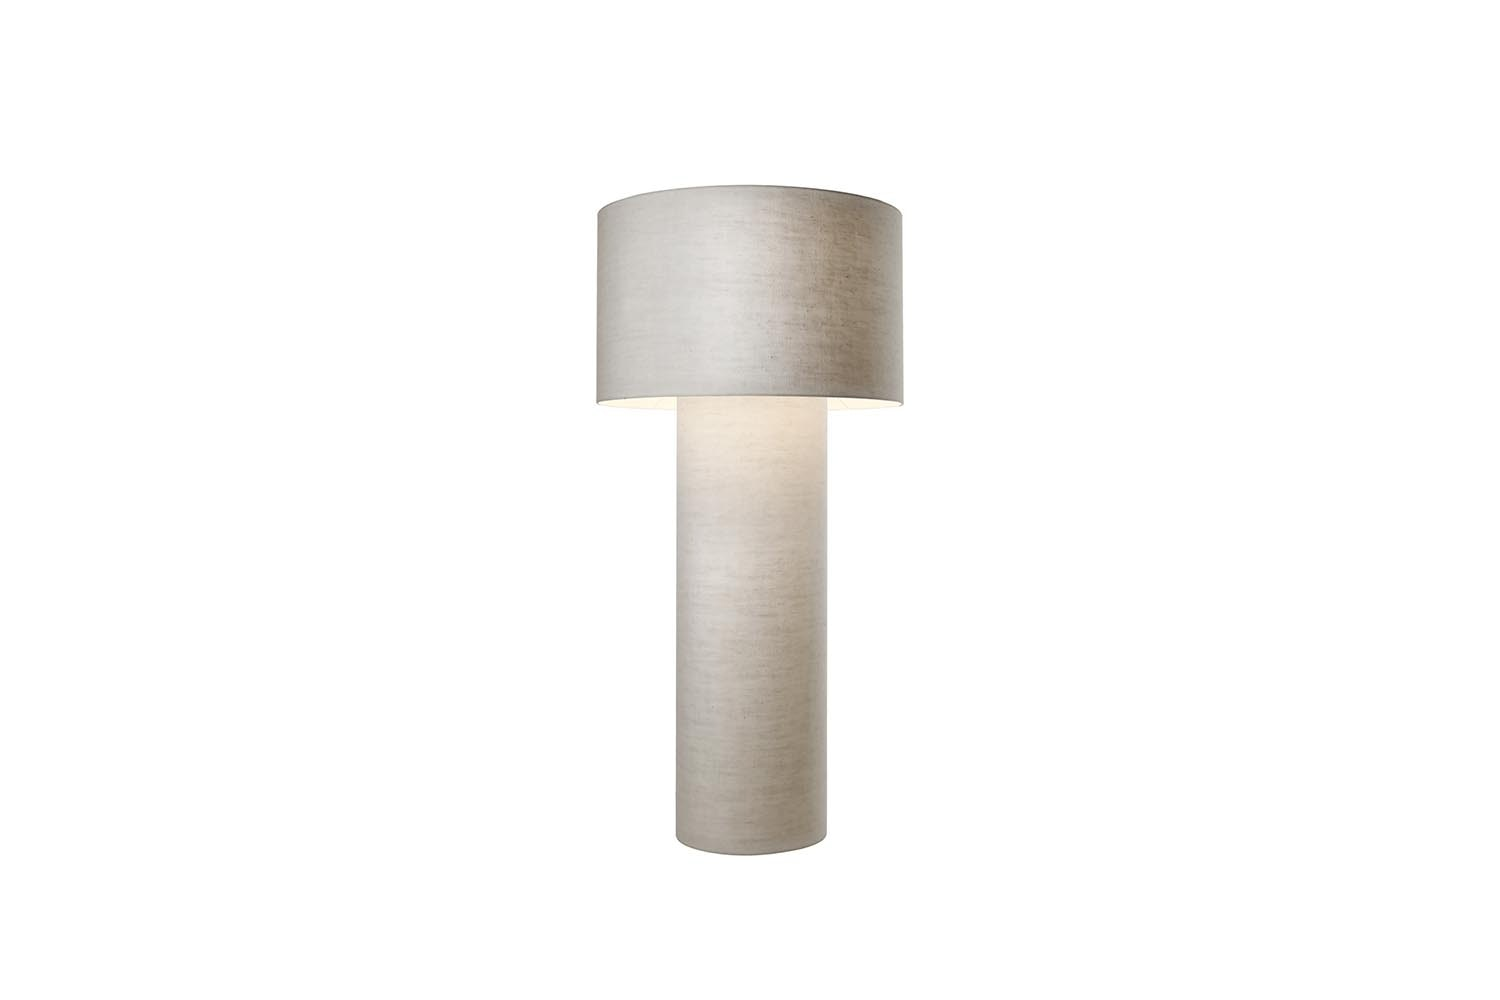 Pipe Media Floor Lamp by Successful Living from DIESEL for Foscarini